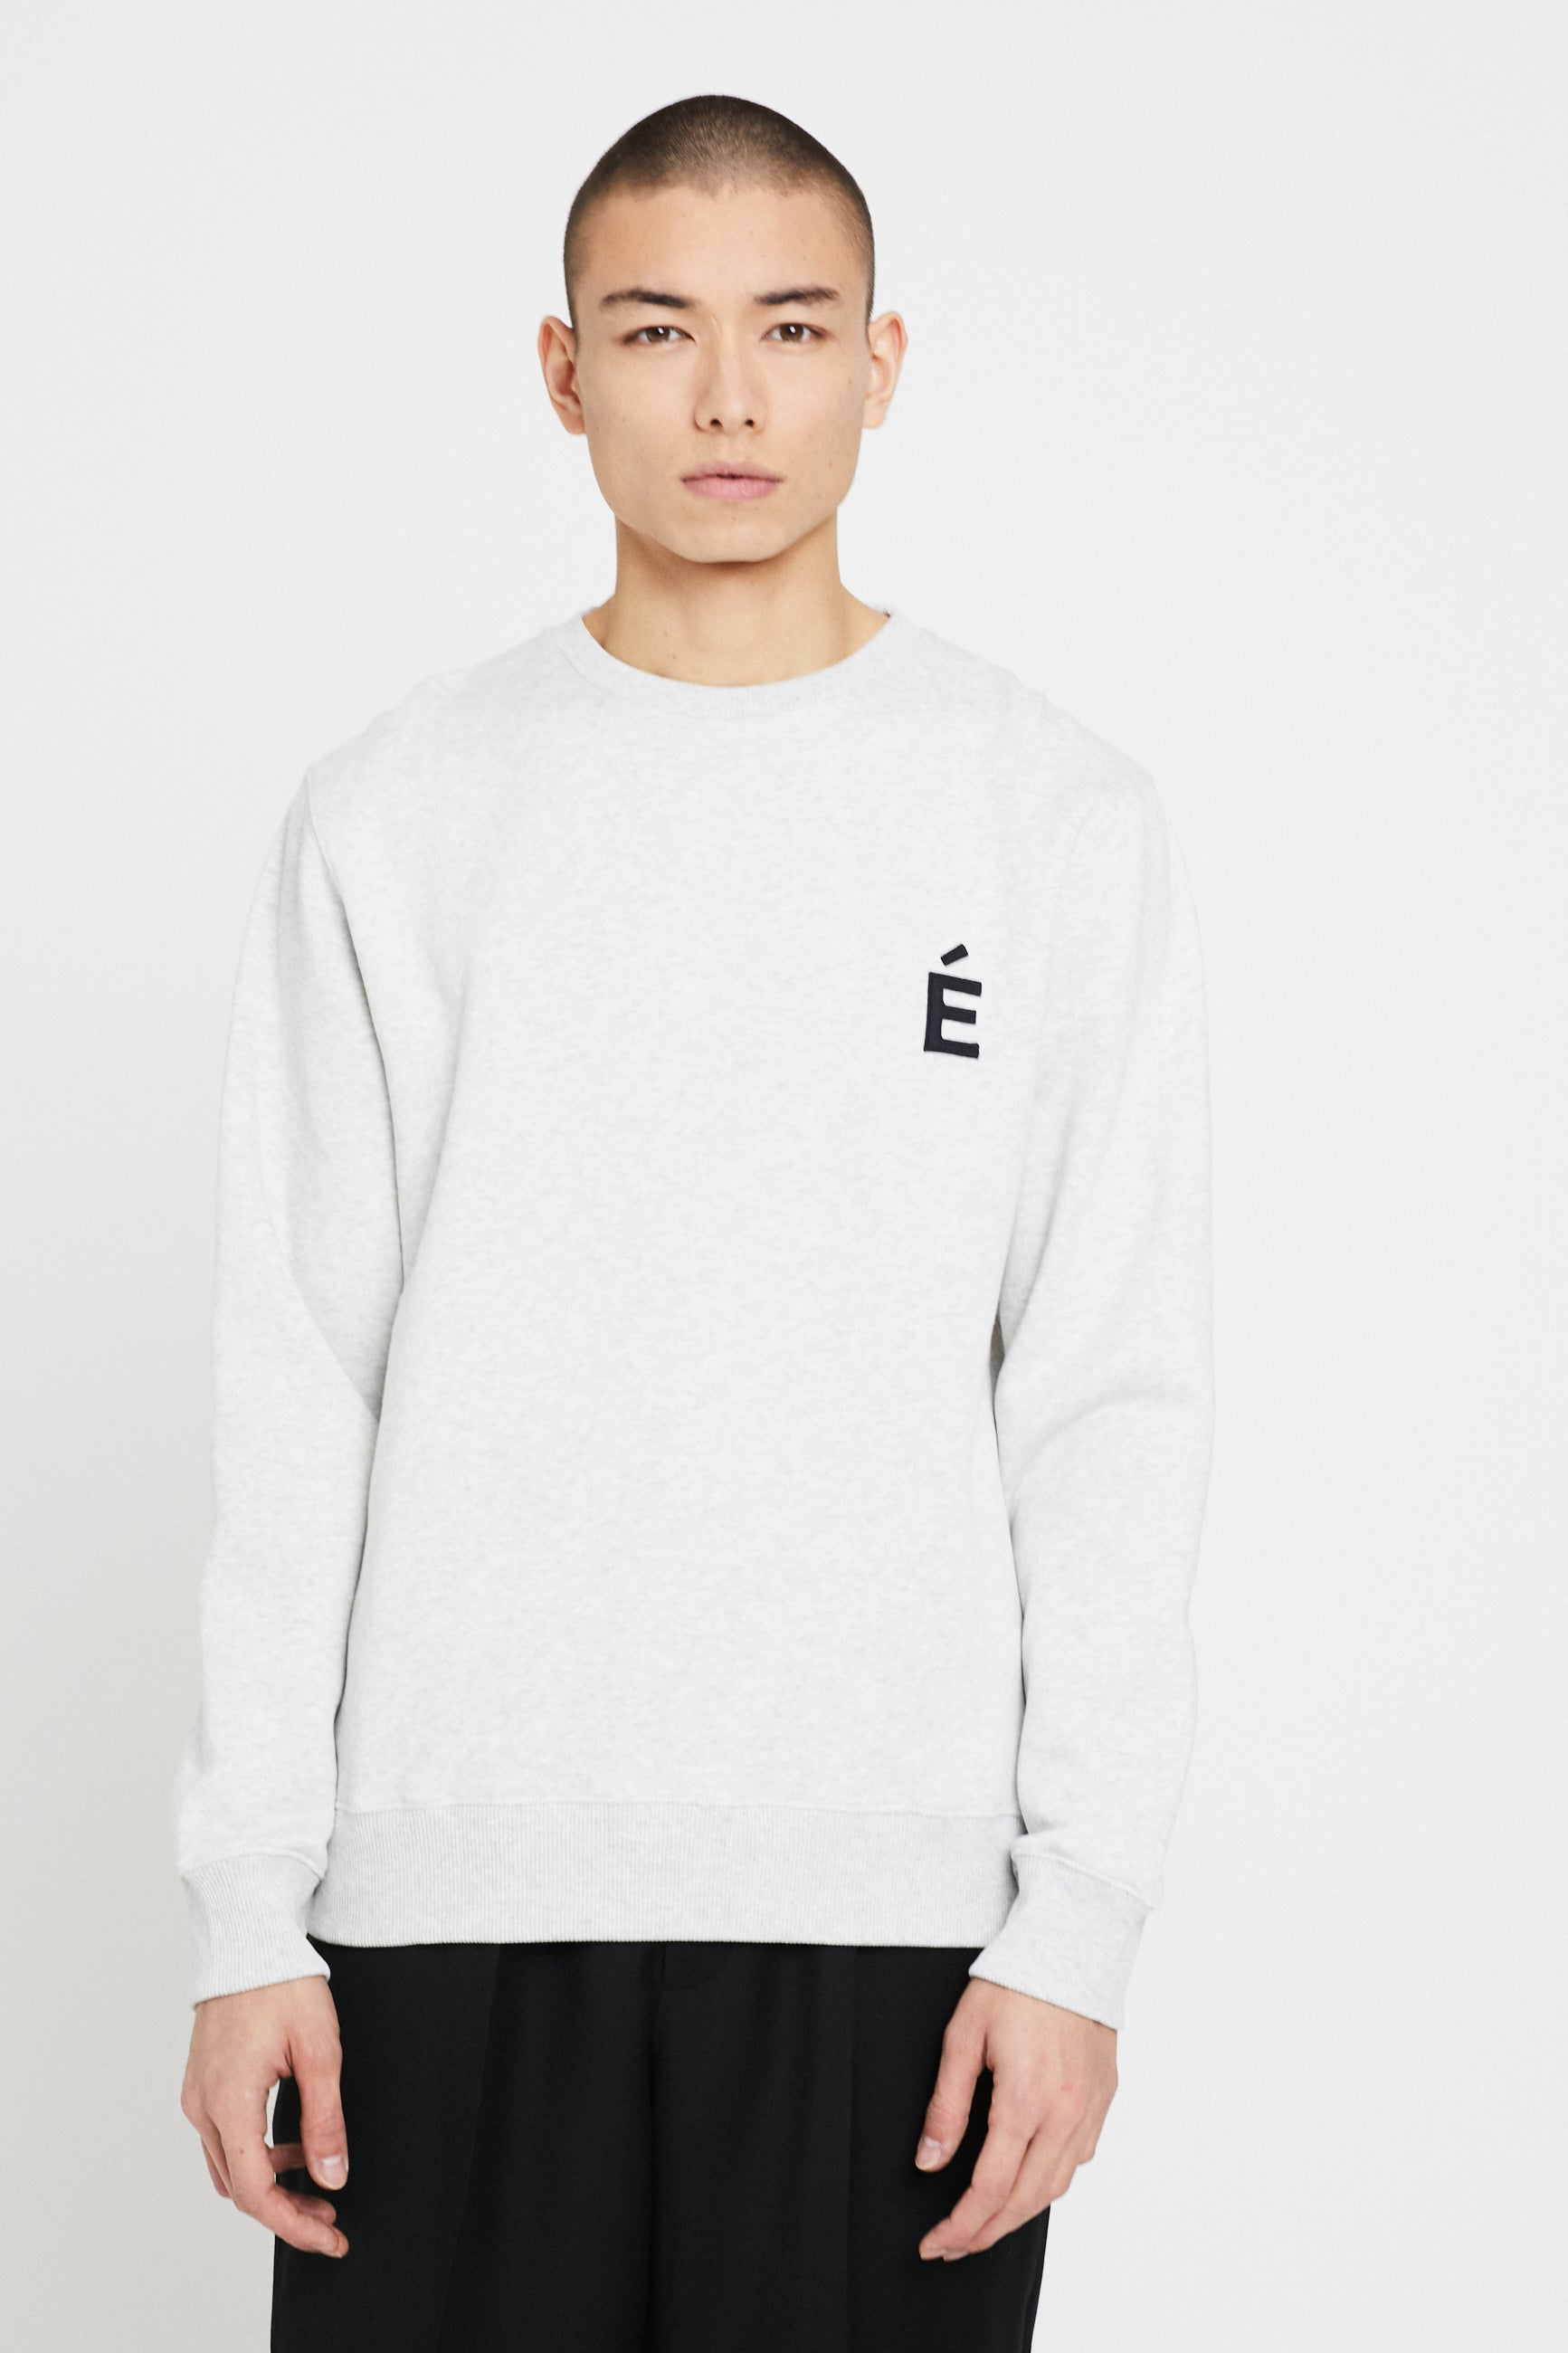 Études Story Patch Heather Grey Sweatshirt 3